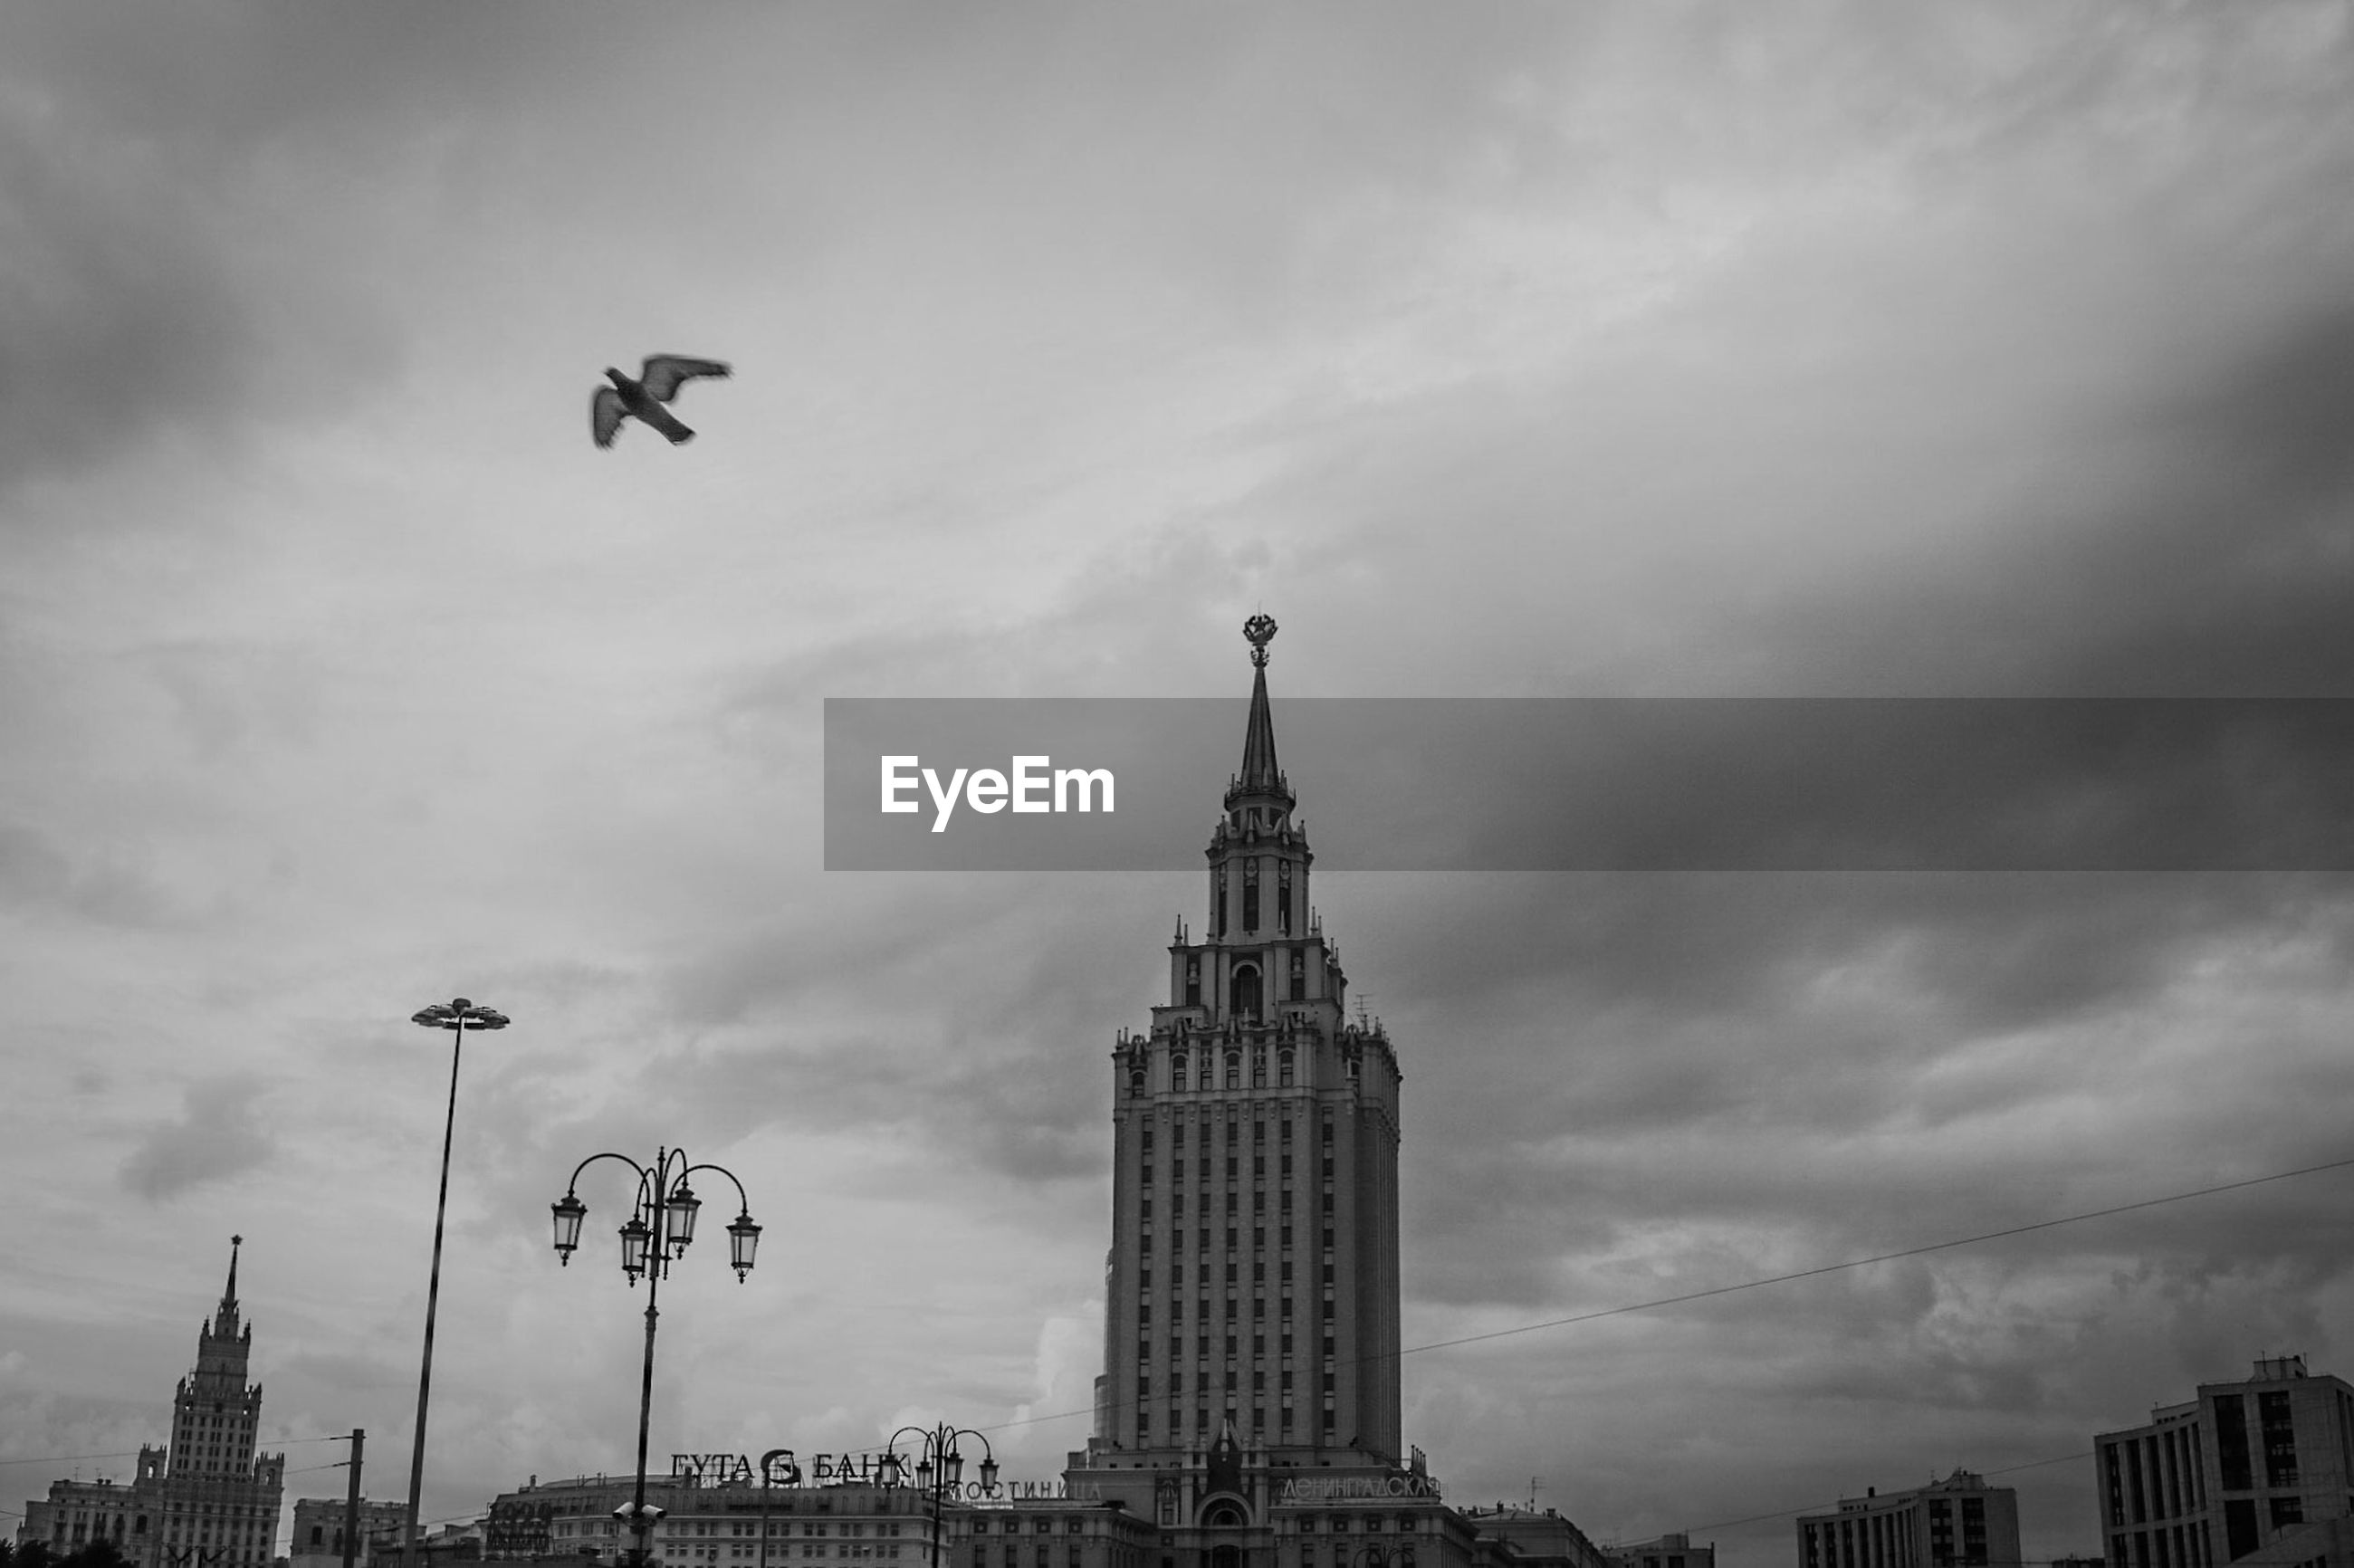 Low angle view of hilton moscow leningradskaya hotel against cloudy sky